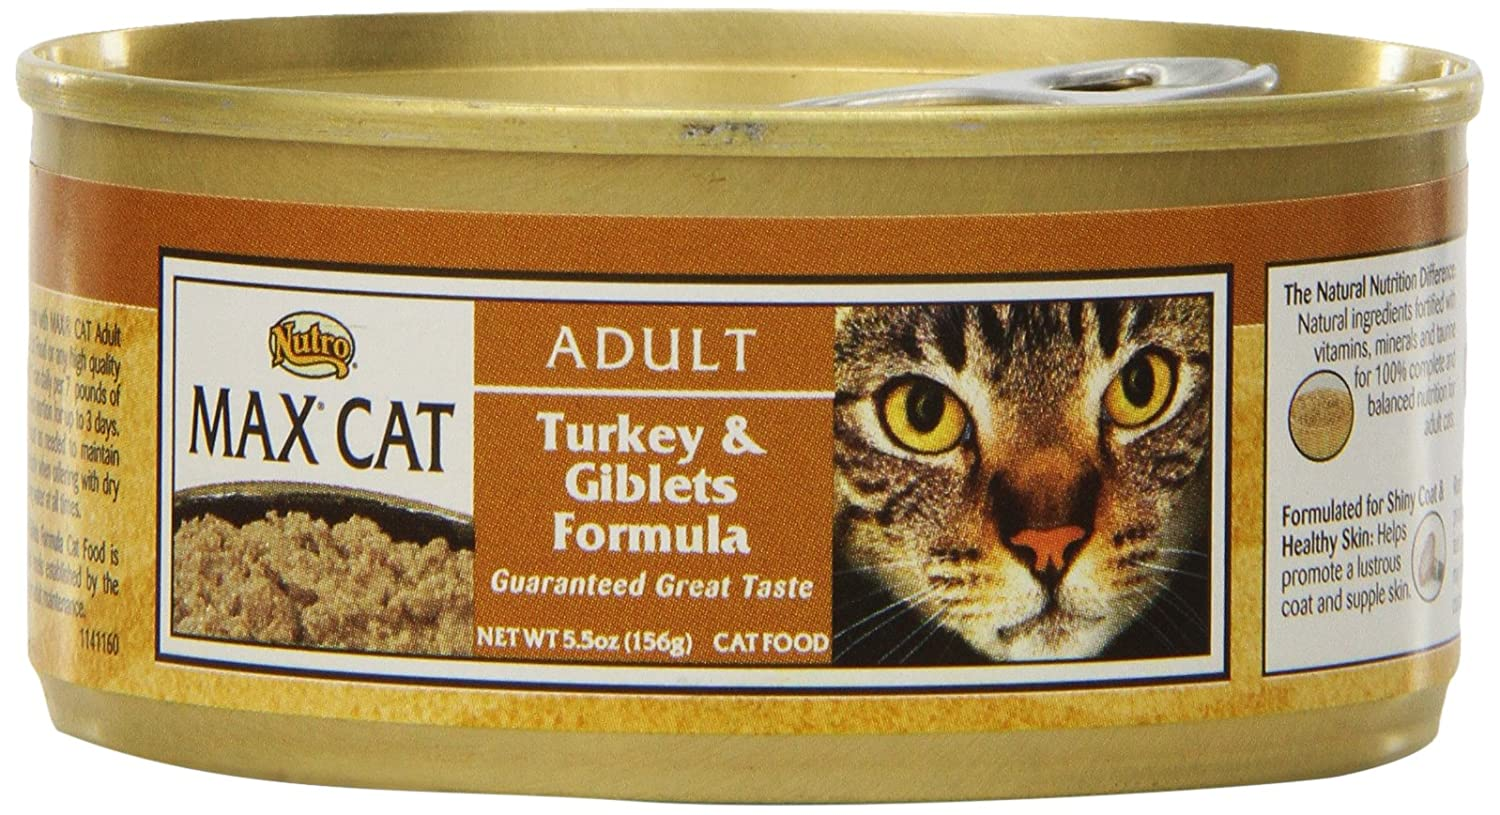 MAX CAT Adult Cat Food Turkey and Giblets Formula Cans, 5.5 oz, 24 Count